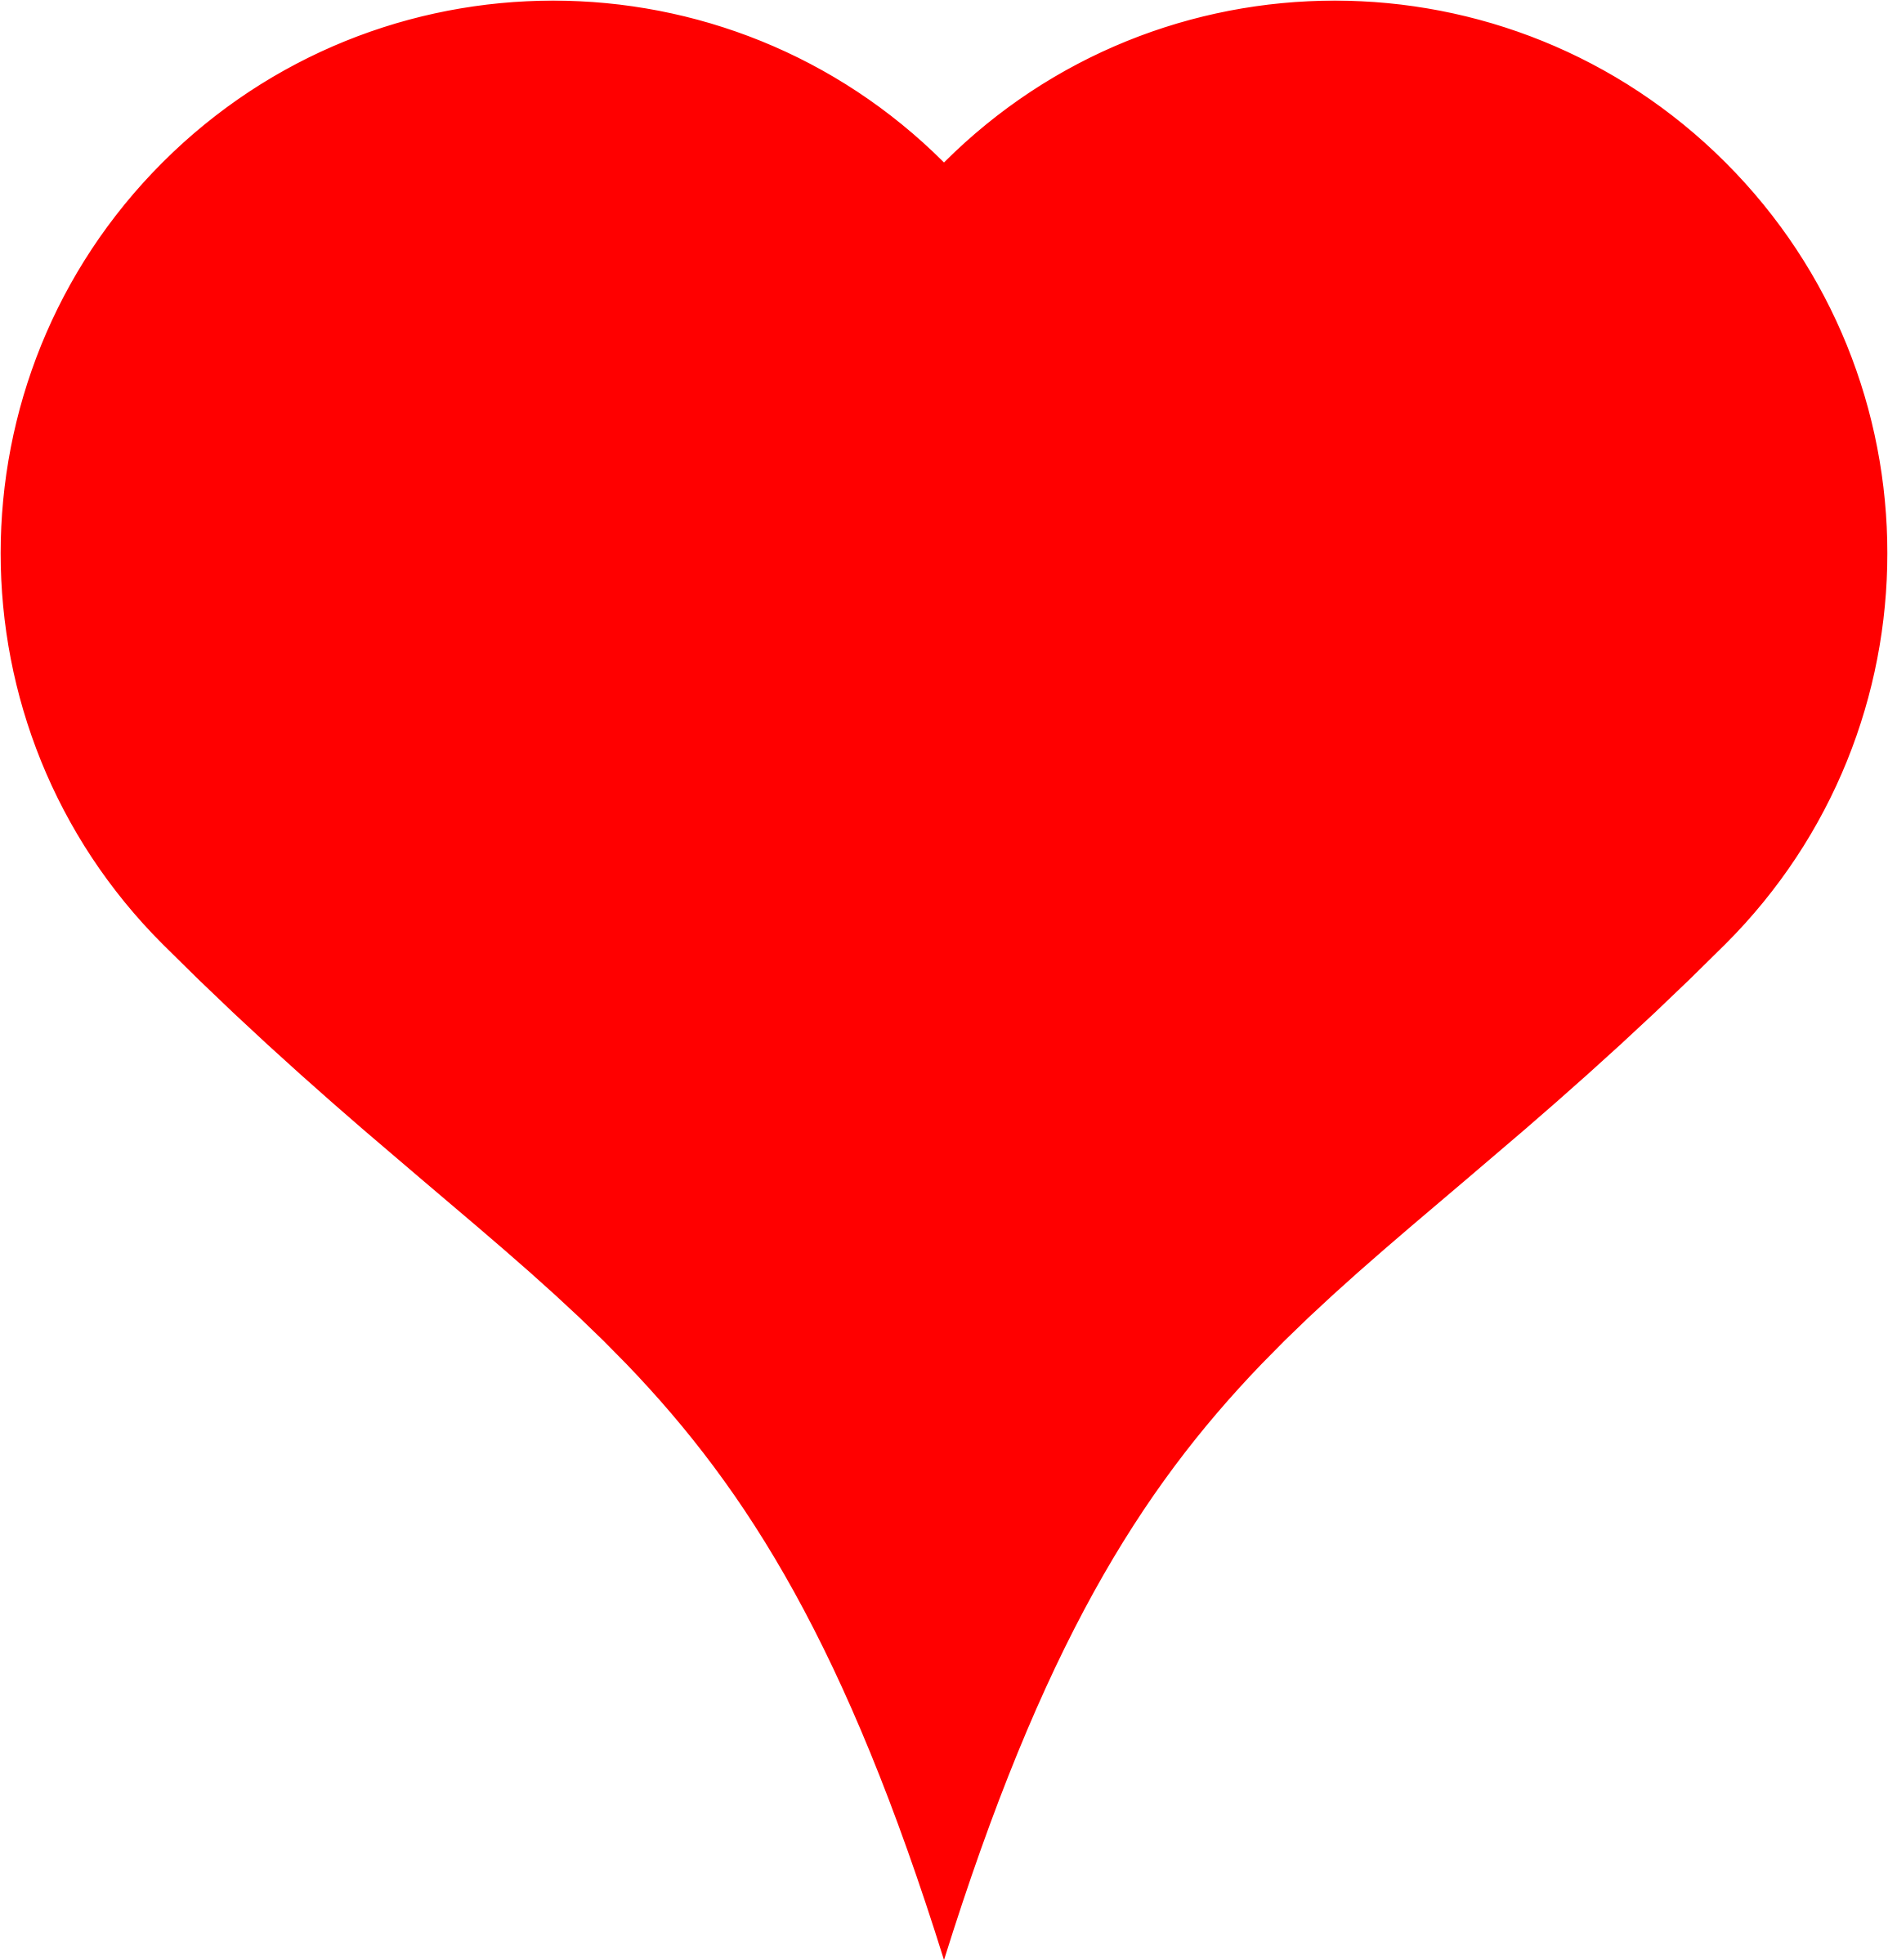 Heart clipart orange. Hal made of semicircle